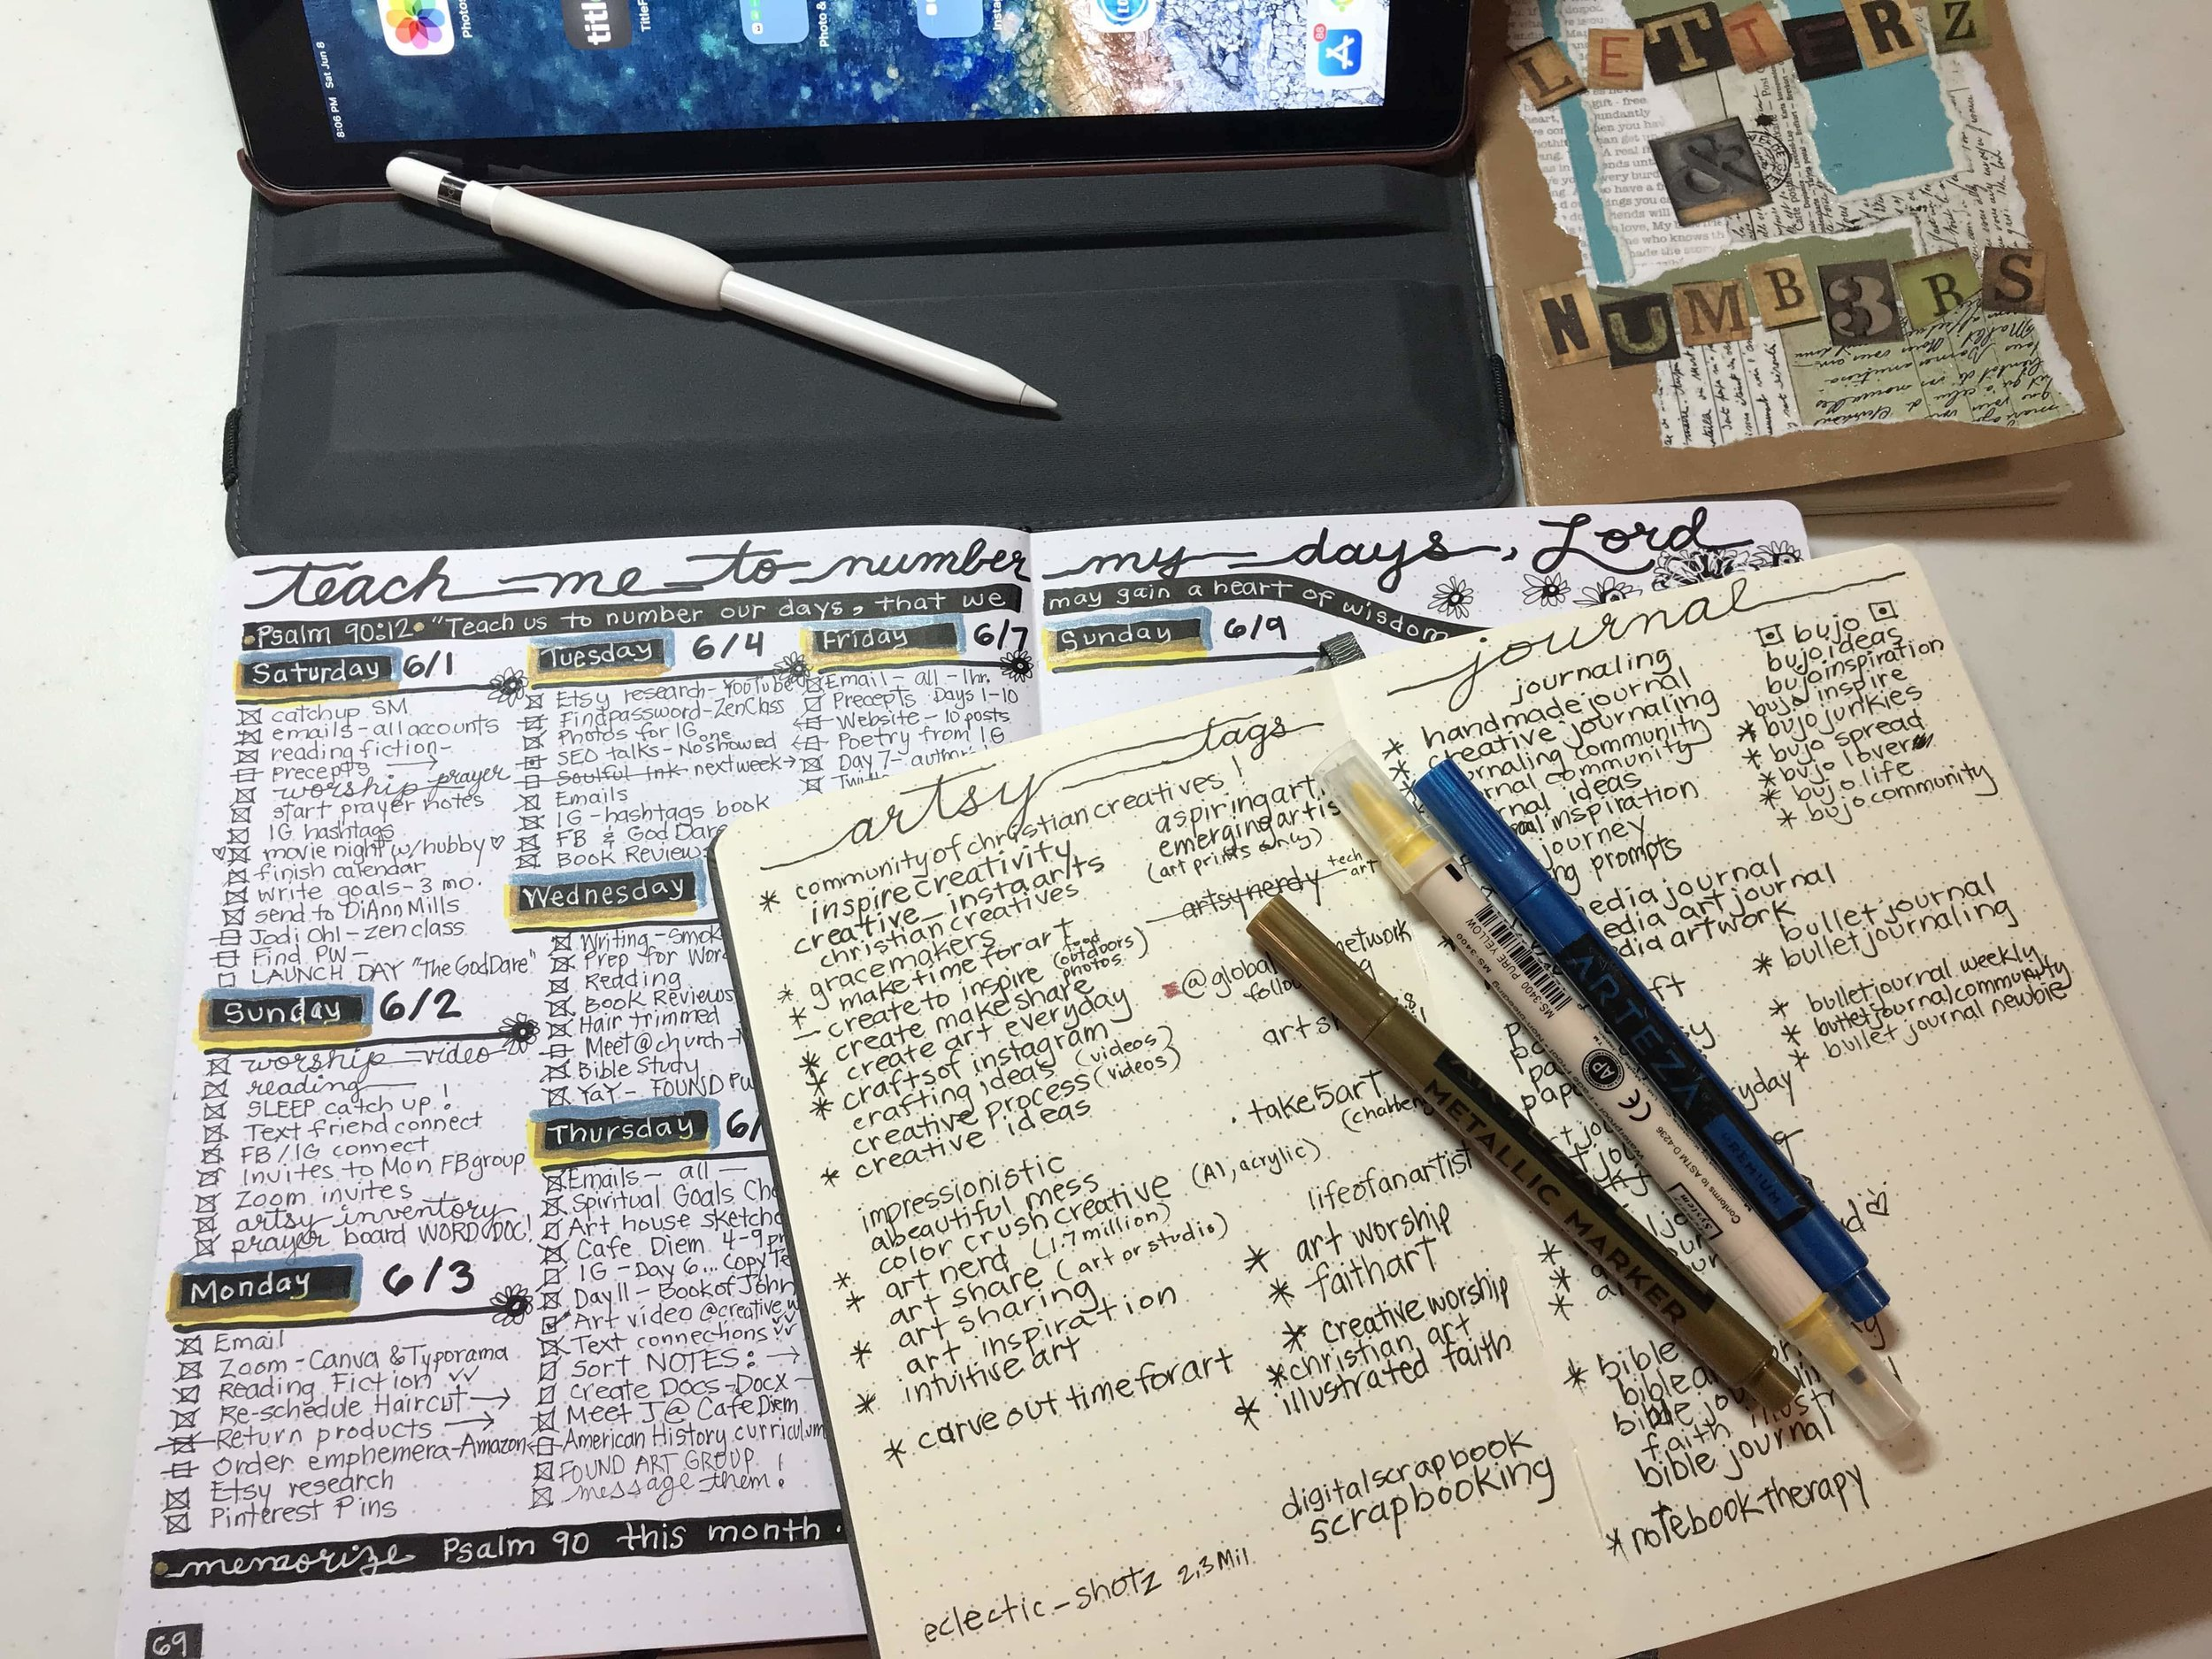 Bullet Journaling - Hashtags, Planning, & Intentionality